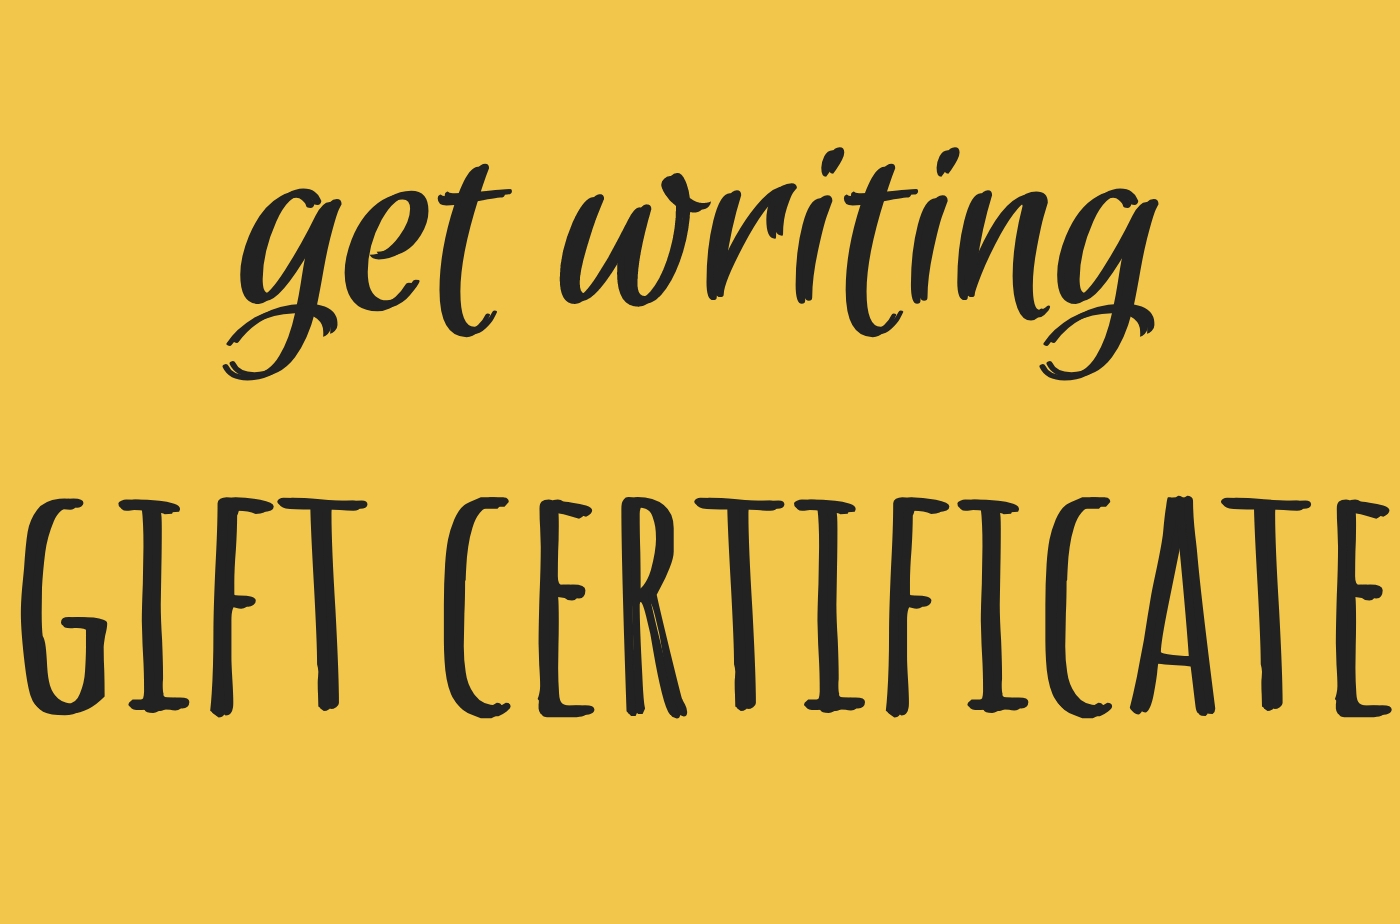 Catapult  classes: Catapult Classes, Get Writing Gift Certificate, Open-Genre, Independent Study